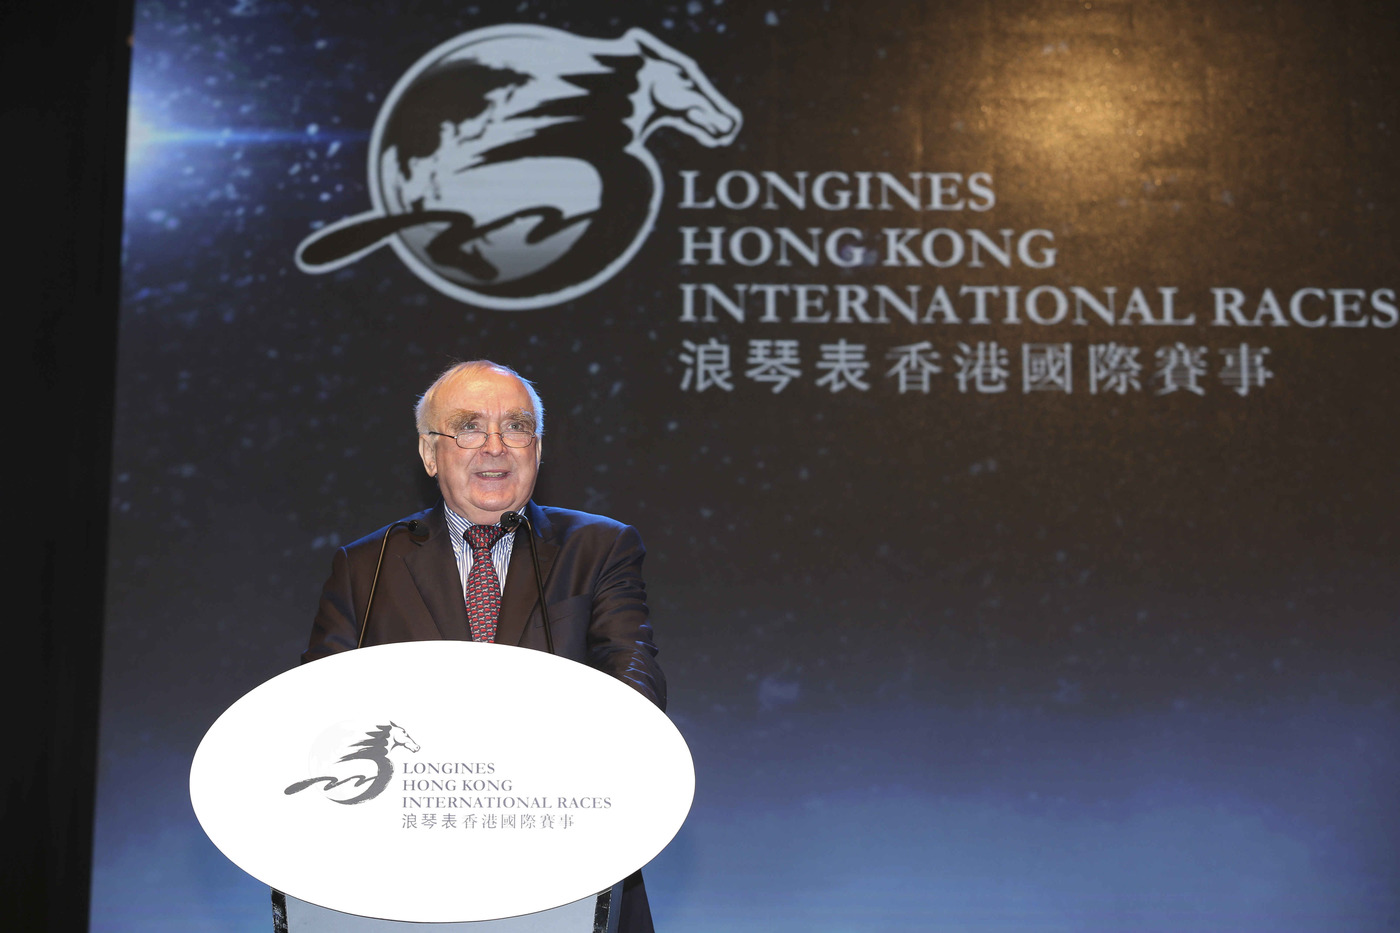 Longines Flat Racing Event: Ryan Moore crowned Longines World's Best Jockey 2014 at the Longines Hong Kong International Races Gala Dinner  6